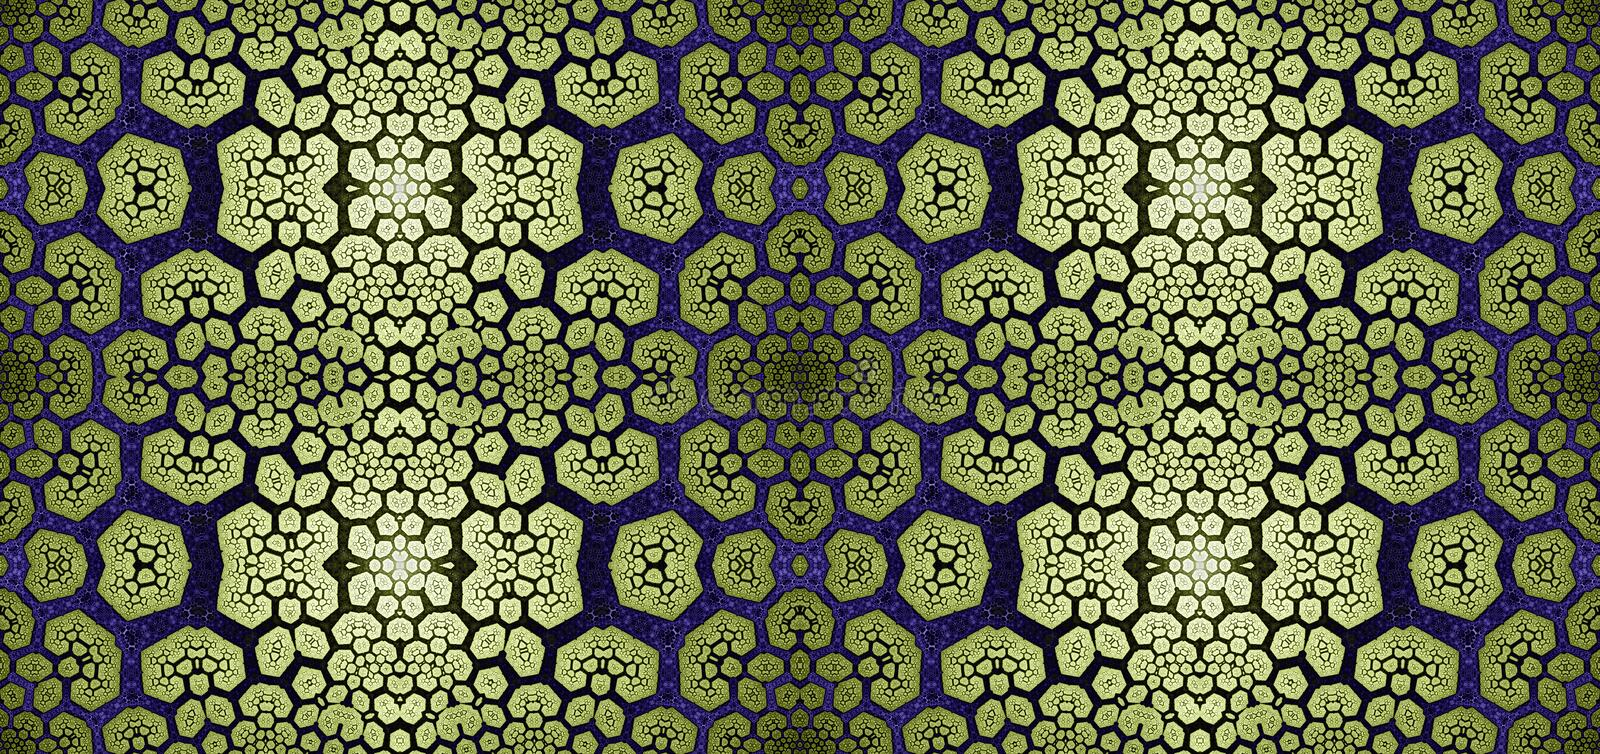 Abstract Fractal High Resolution Seamless Pattern For Carpets Images, Photos, Reviews